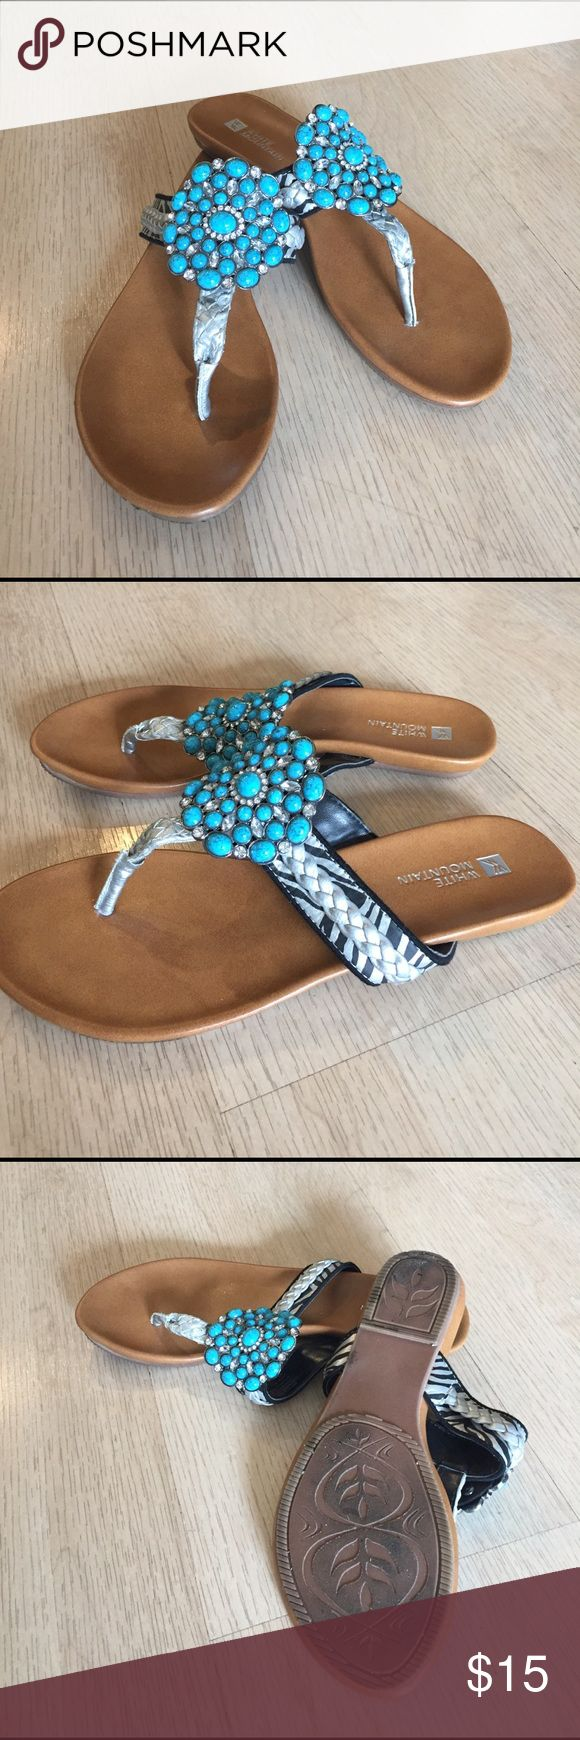 White mountain turquoise jeweled flat shoe White mountain flat with cute turquoise and crystal stones. Sides are braided silver w black and silver print. white mountain Shoes Flats & Loafers